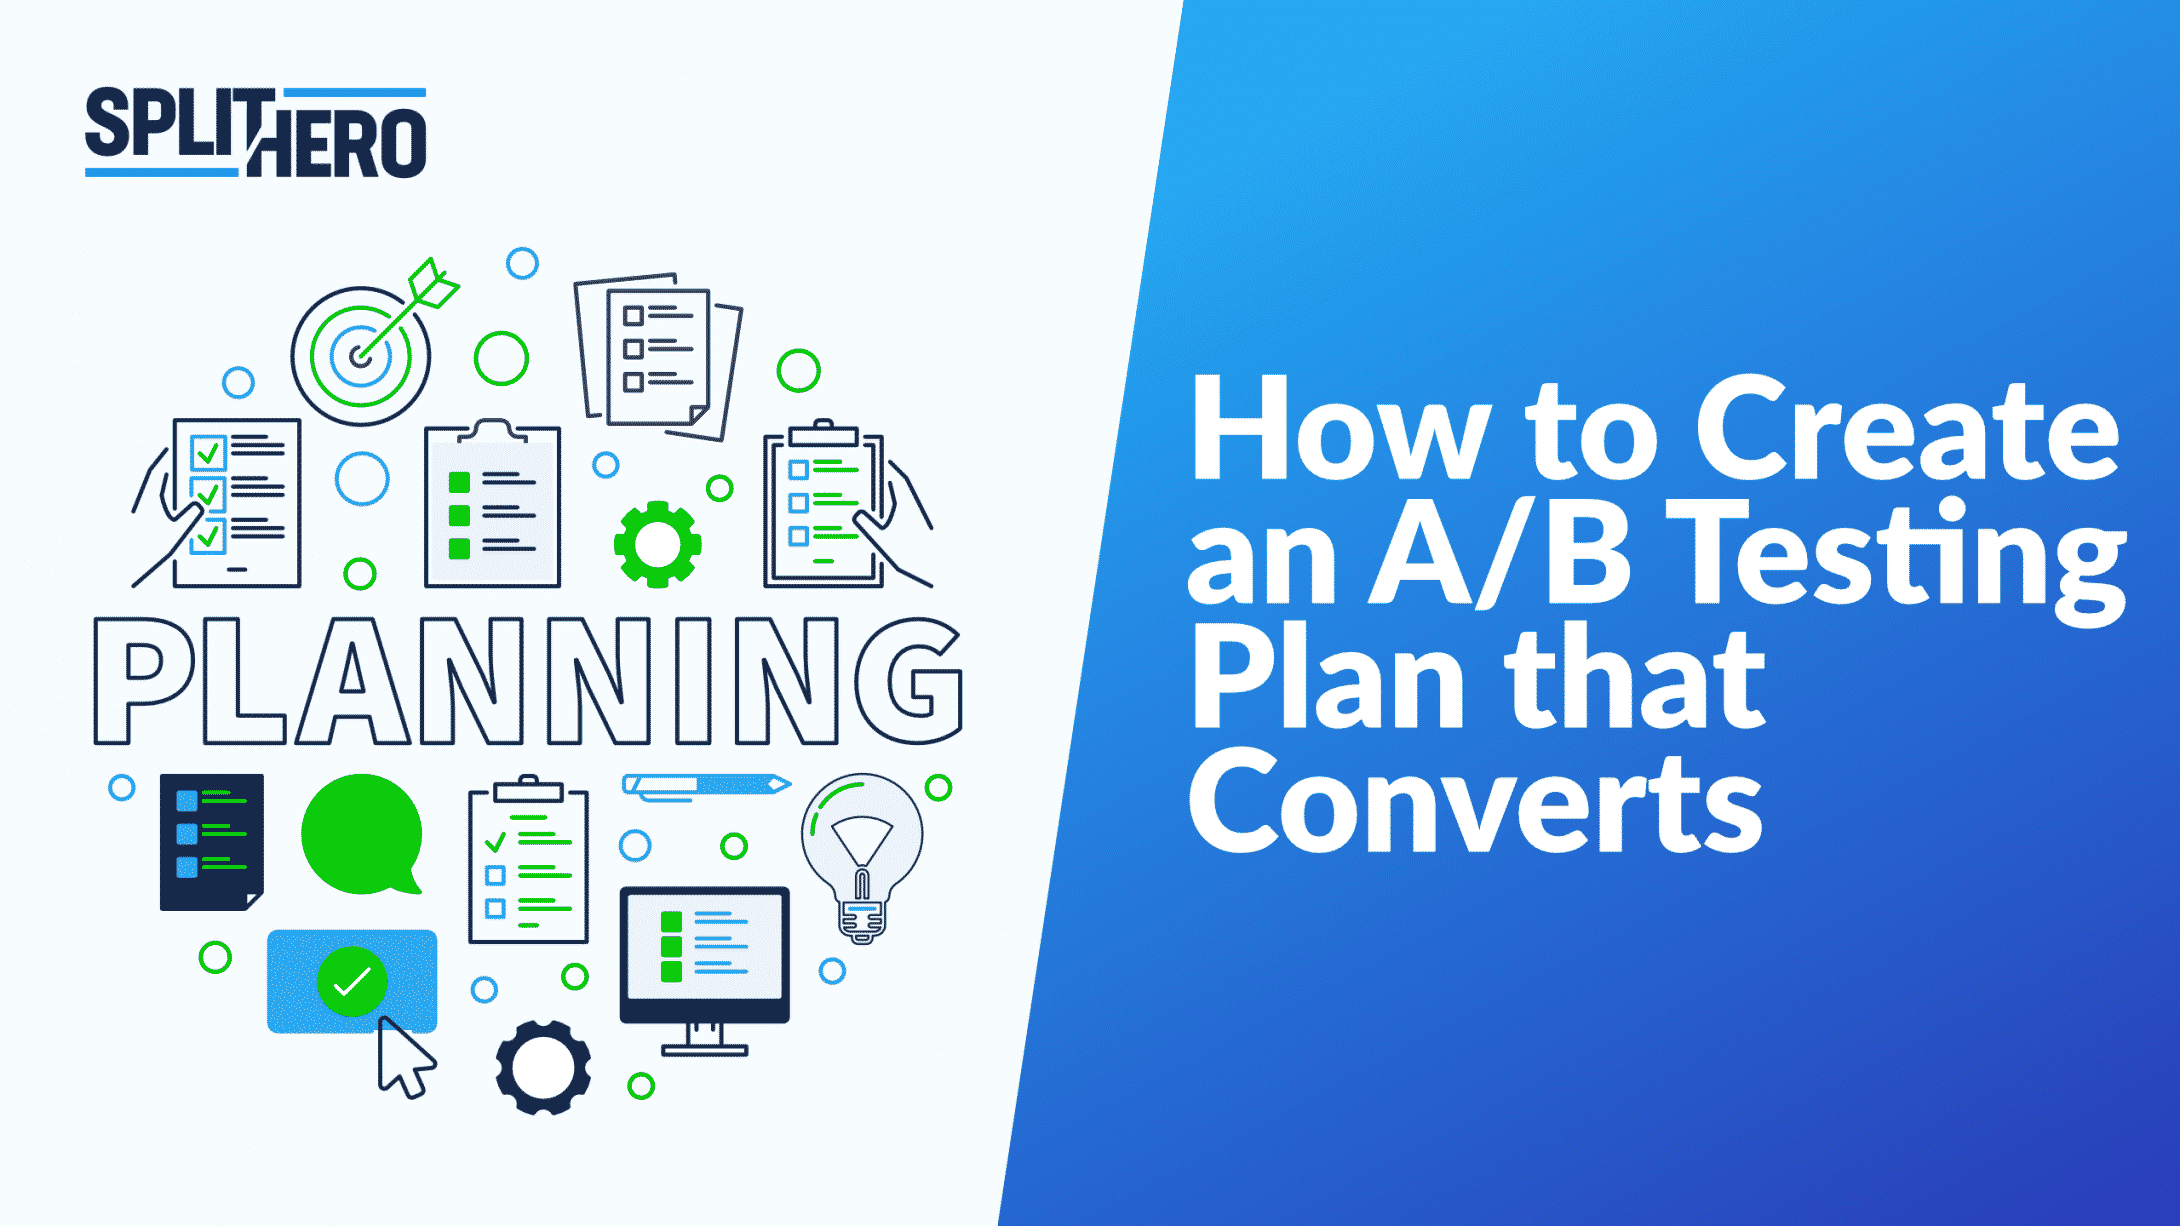 how-to-creat-an-ab-testing-plan-that-converts